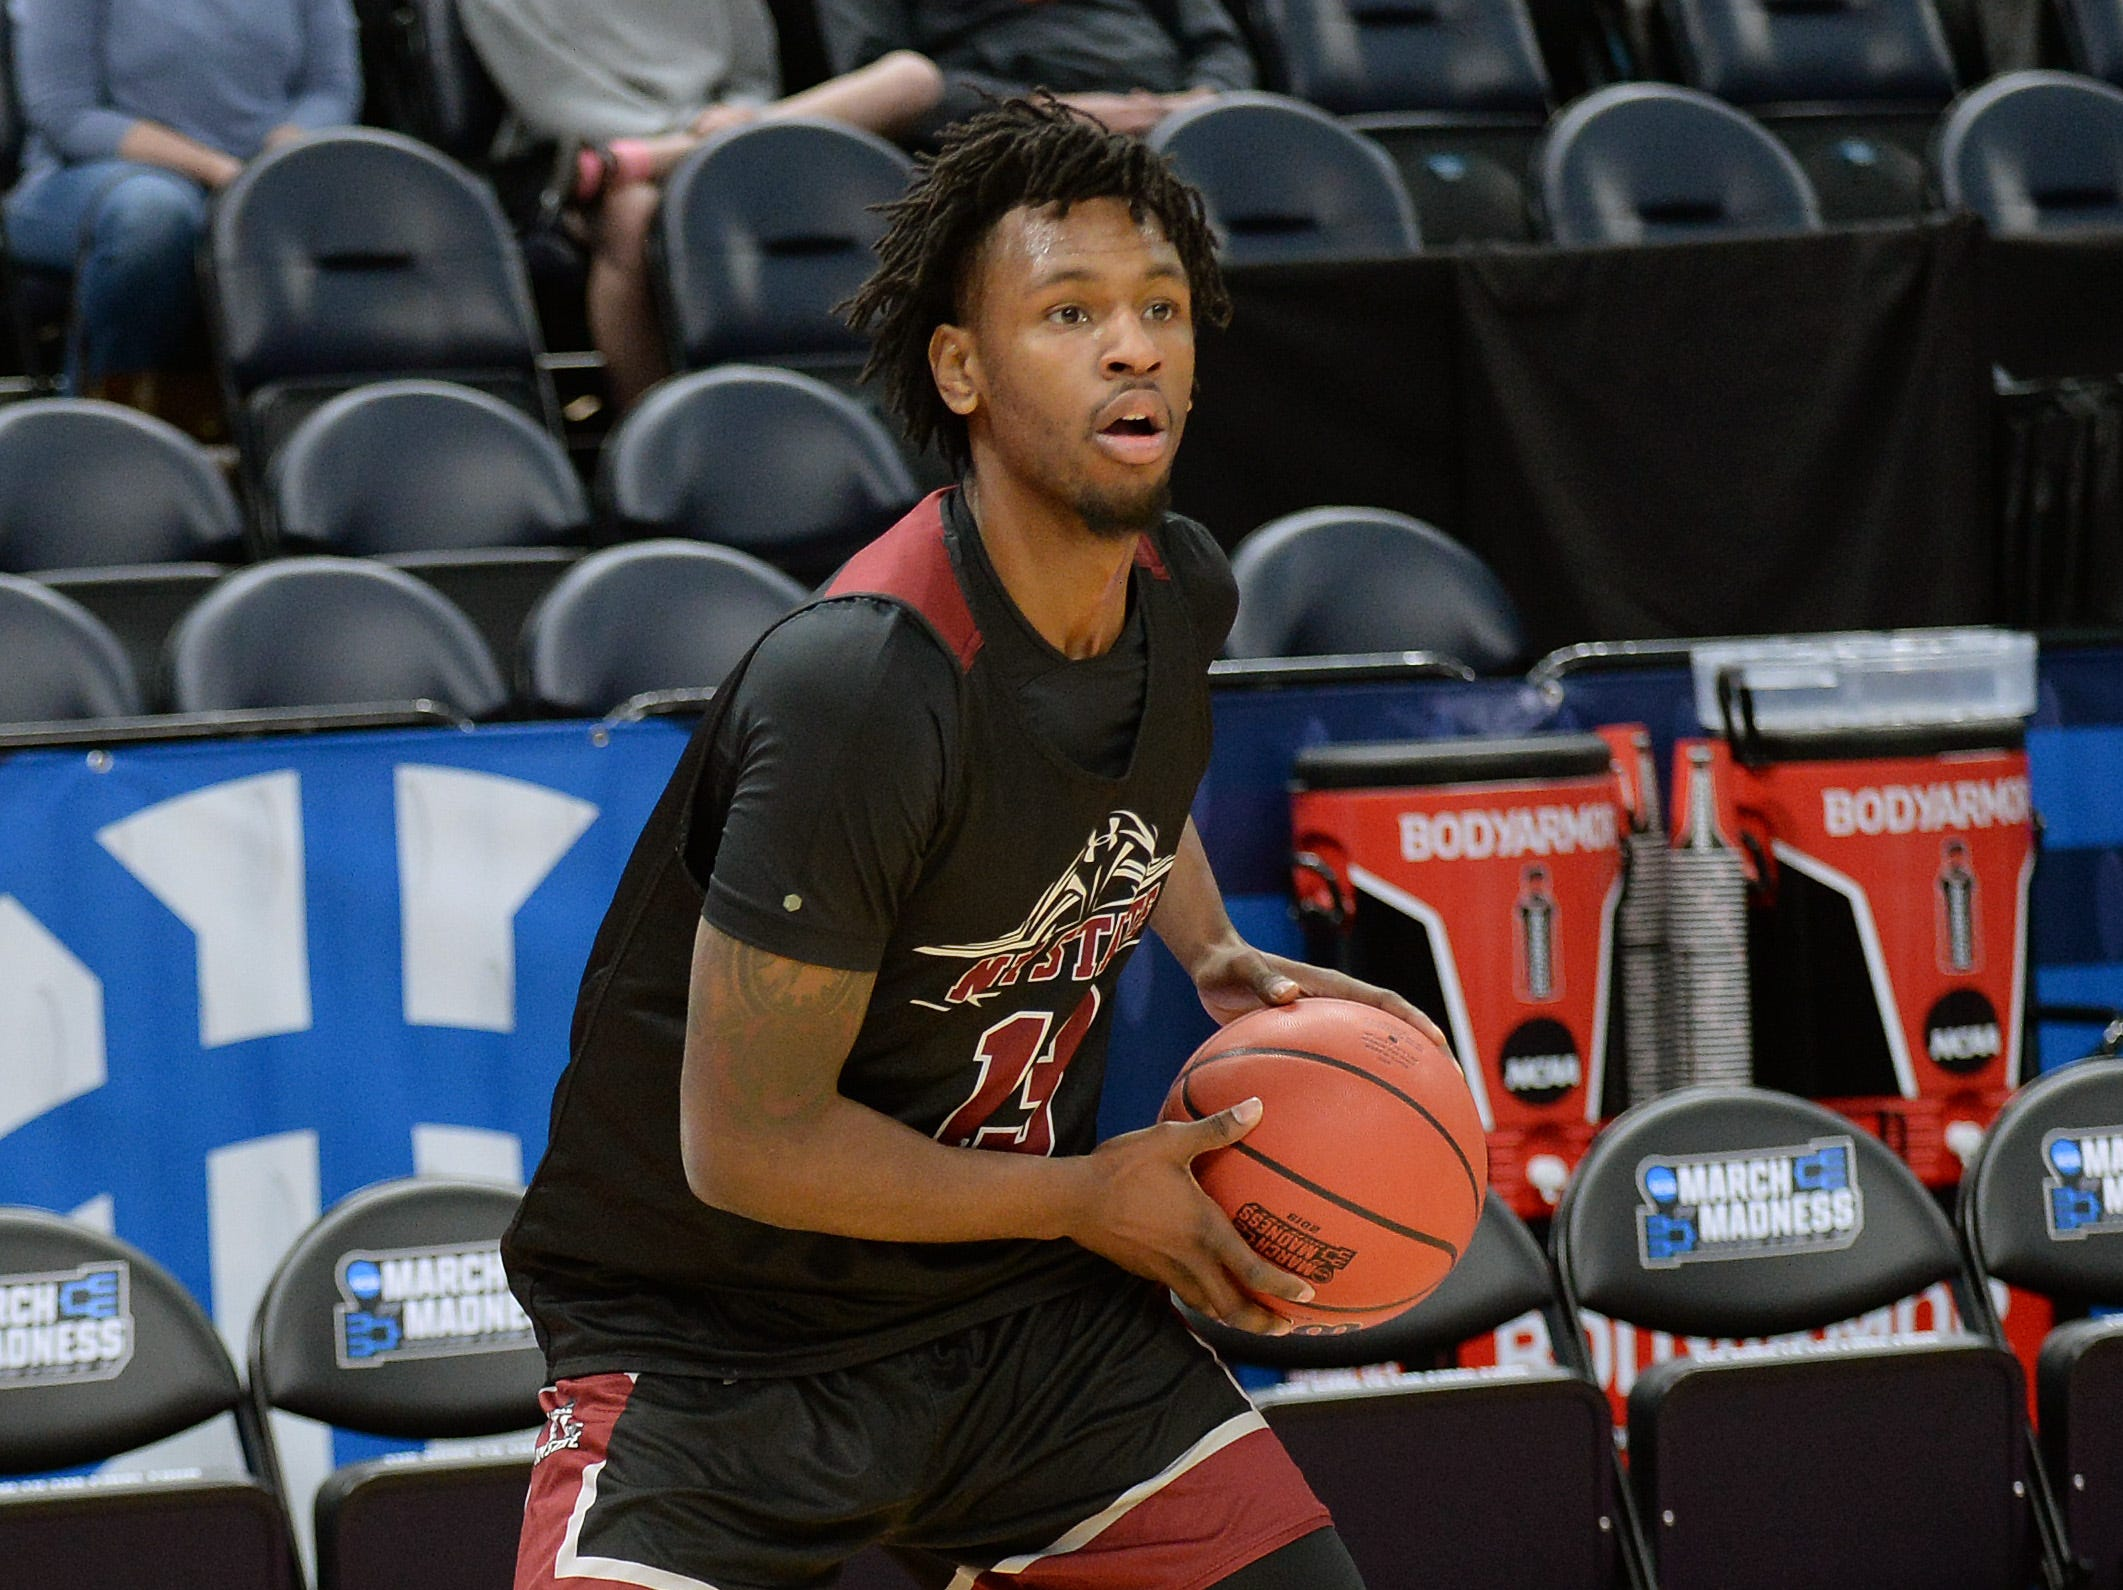 March 20, 2019; Salt Lake City, UT, USA; New Mexico State Aggies forward C.J. Bobbitt (13) during practice before the first round of the 2019 NCAA Tournament at Vivint Smart Home Arena. Mandatory Credit: Gary A. Vasquez-USA TODAY Sports